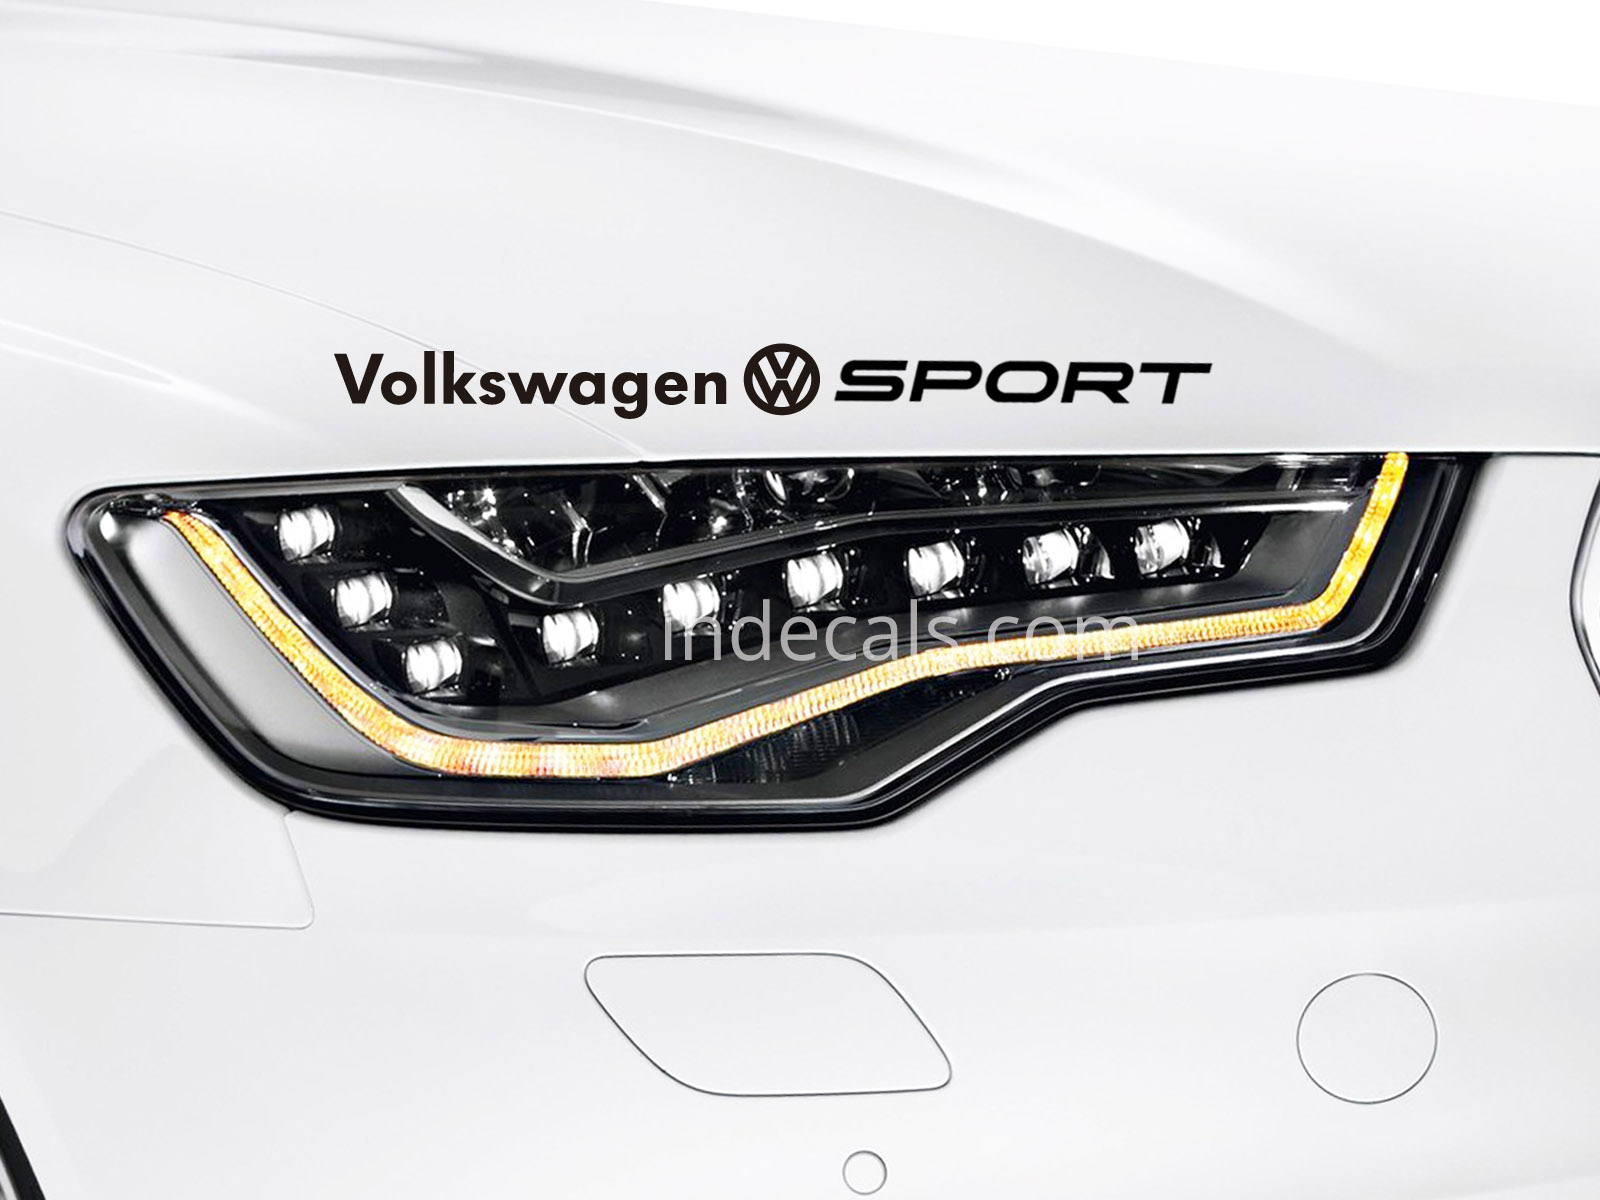 1 x Volkswagen Sport Sticker - Black